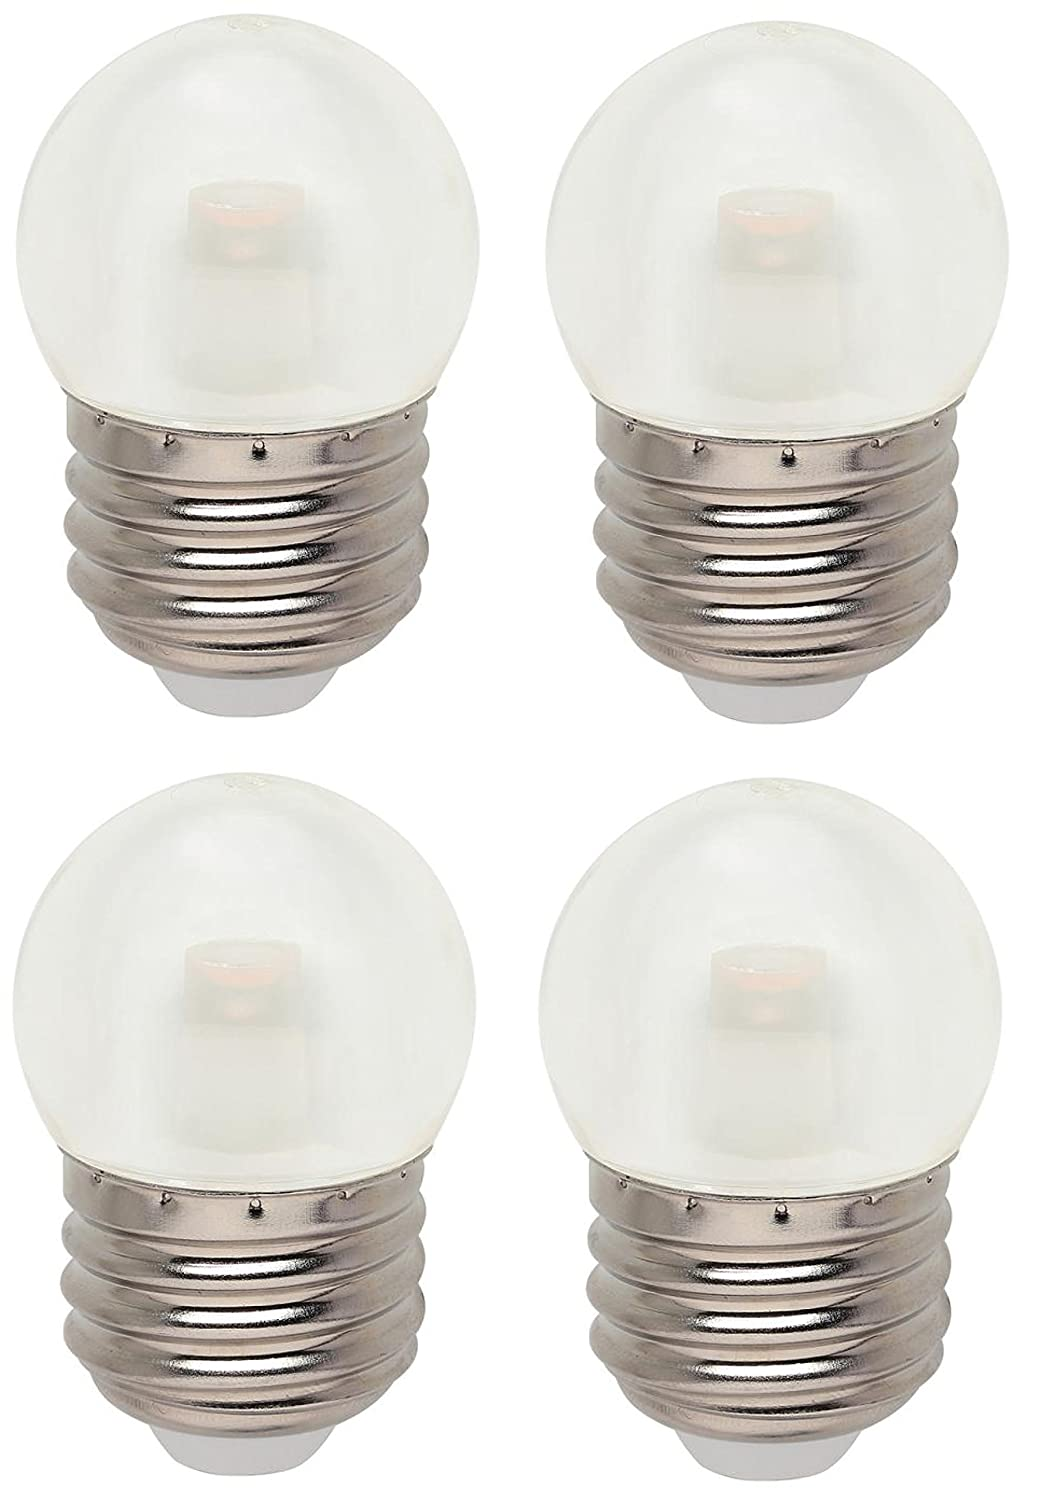 LED S11 2700K Medium Base Light Bulb, 1 Watt (7-1/2 Watt Equivalent) (4  Pack, Clear)